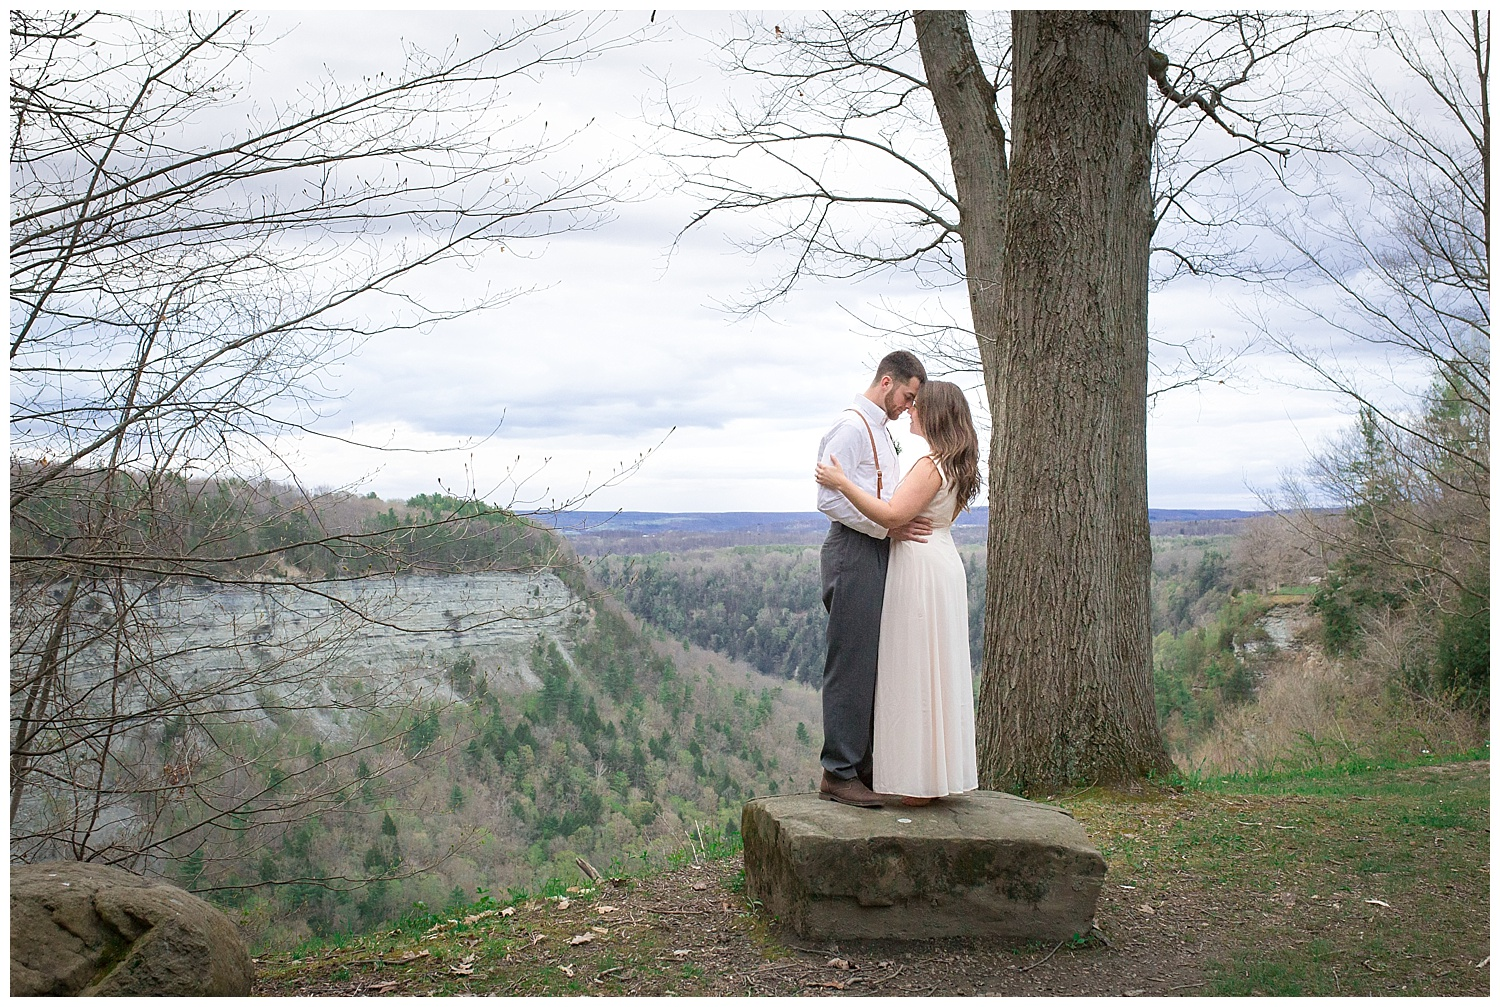 Letchworth state park wedding - whimsical boho romance - rochester lass and beau 85.jpg